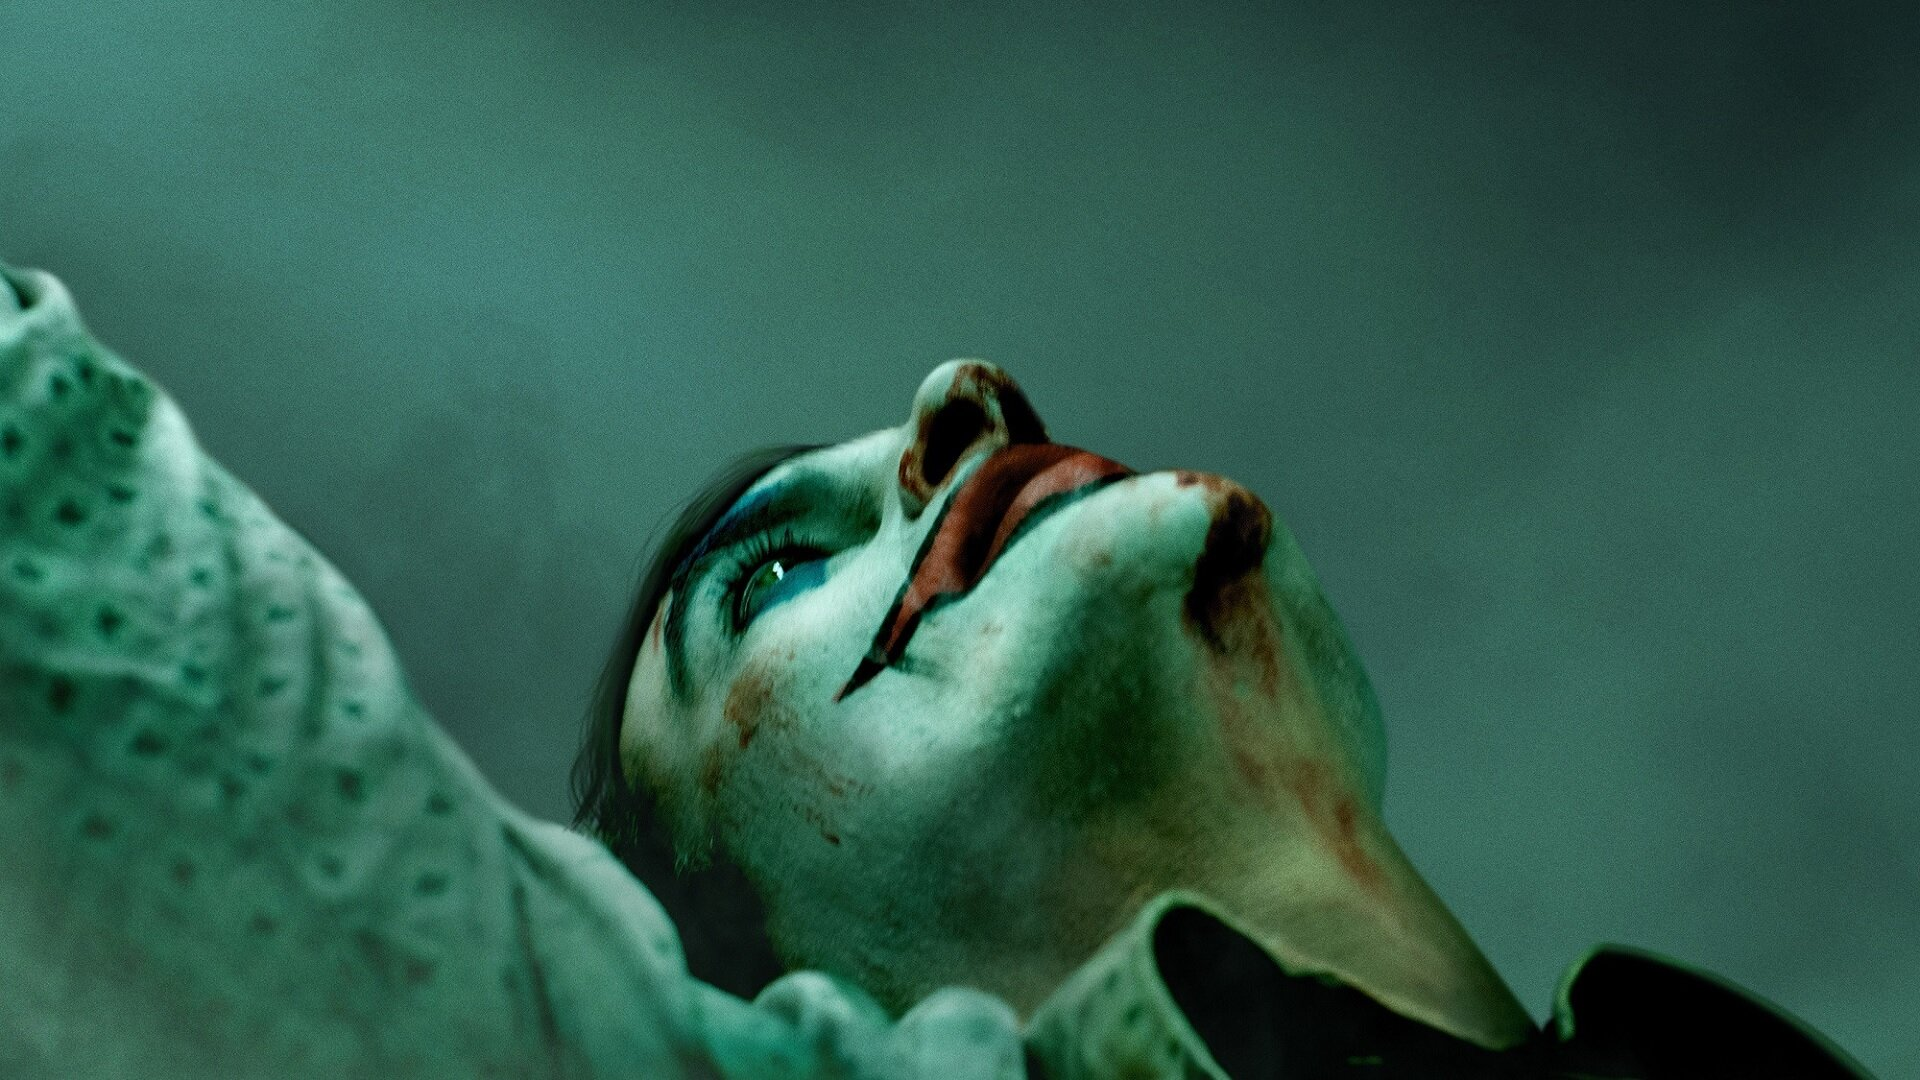 A new route to a familiar evil… - While this may, arguably, be the most truthfully-realized version in cinema, a Joker without Batman misses an important ingredient.